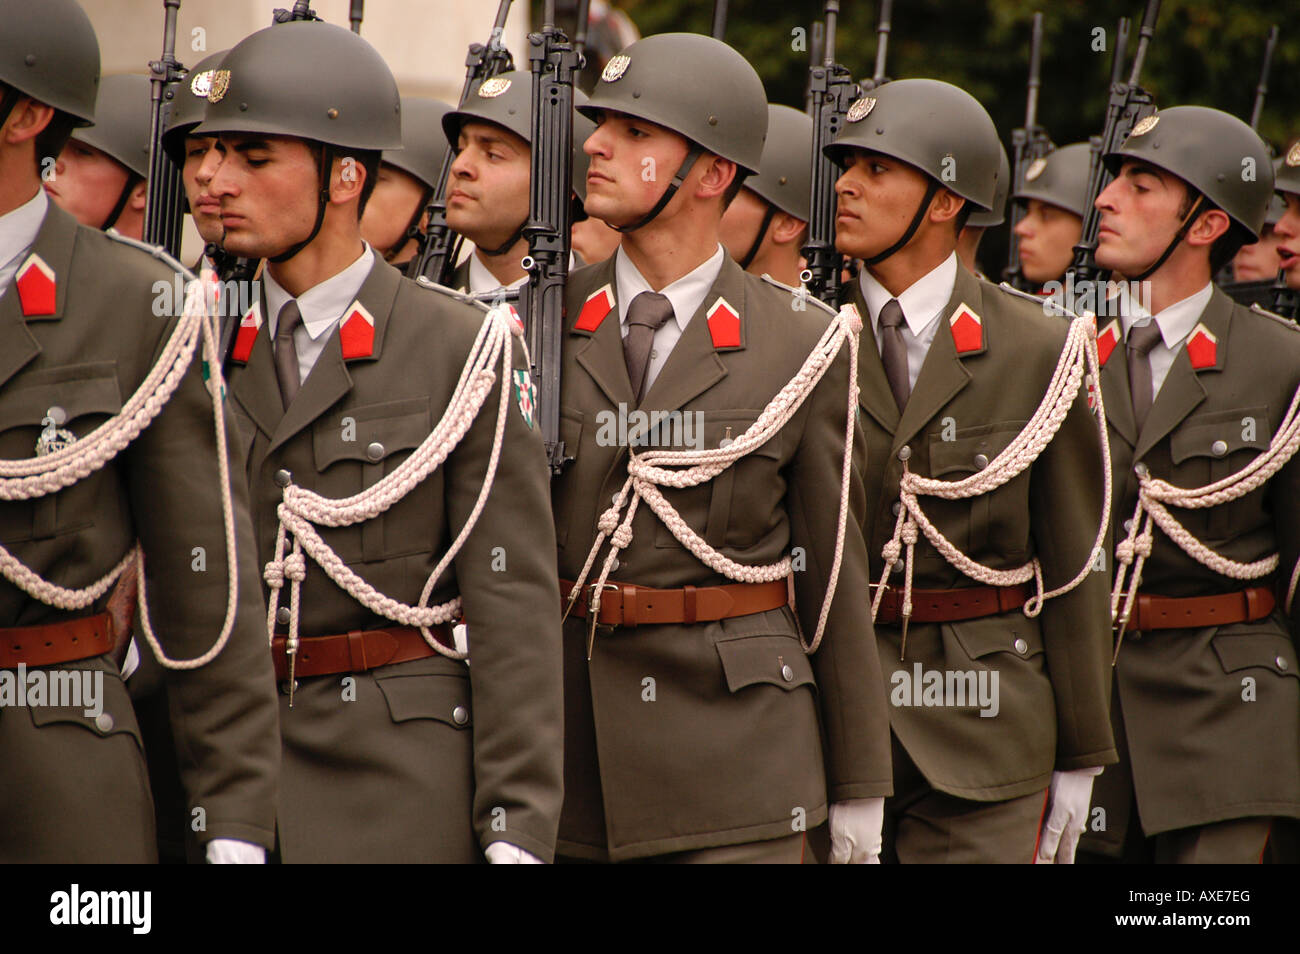 Austria Vienna Heldenplatz Heroes Square Army Honor Guard for visiting generals - Stock Image